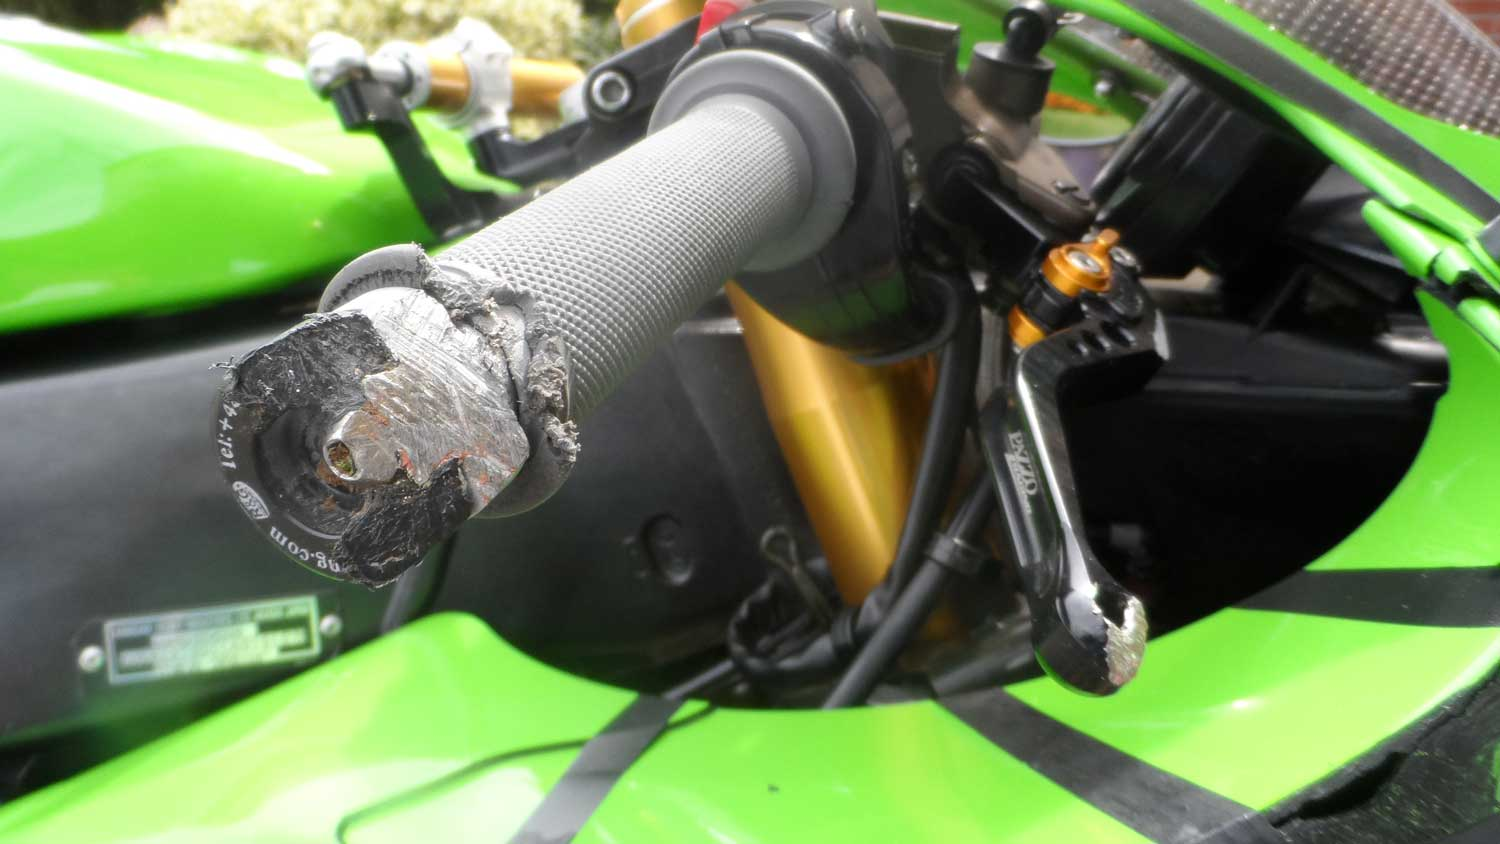 R&G crash protection zx10r 003